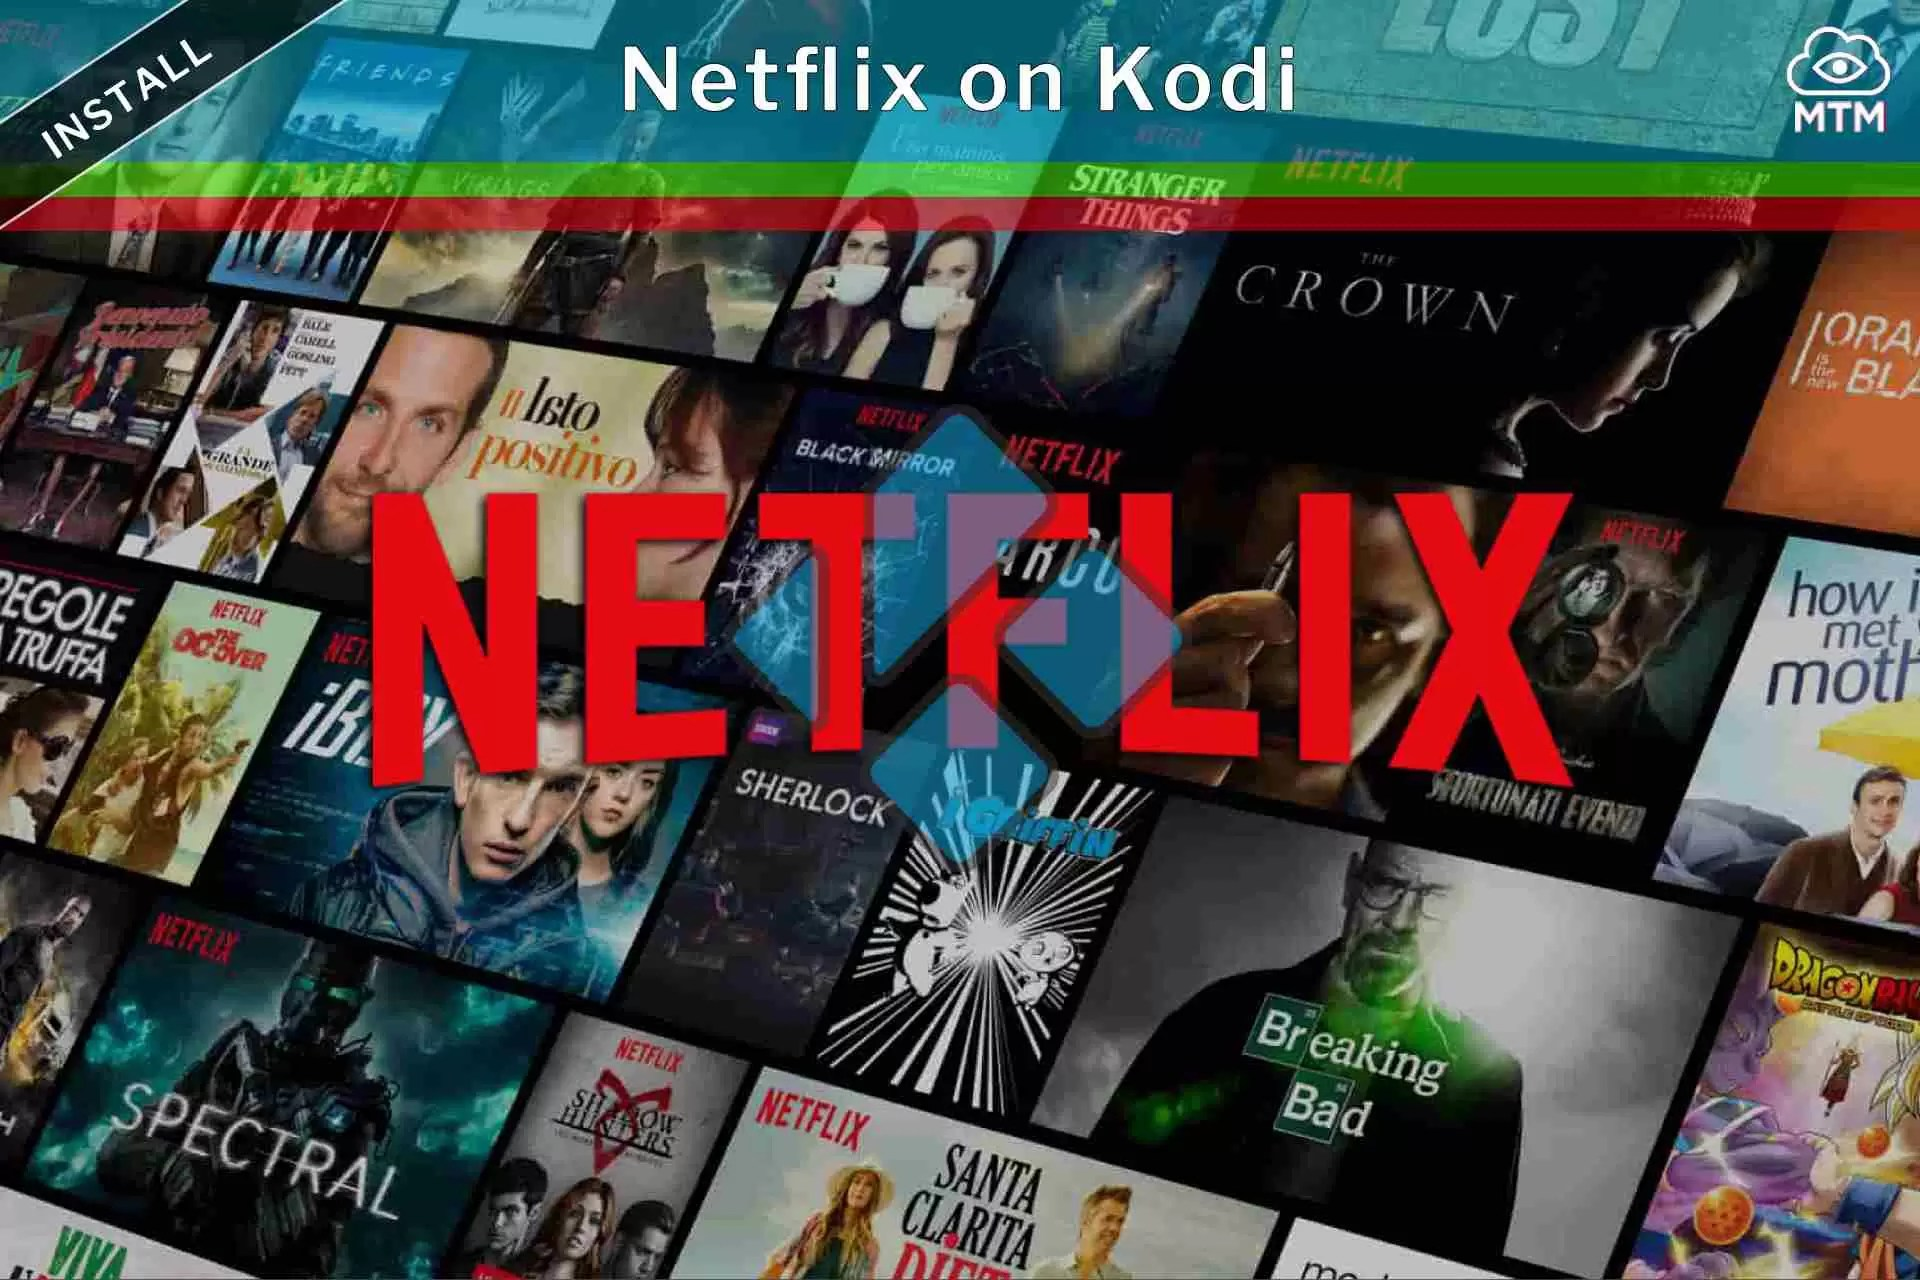 Einrichten Netflix How To Install Watch Netflix Kodi 18 Leia Addon